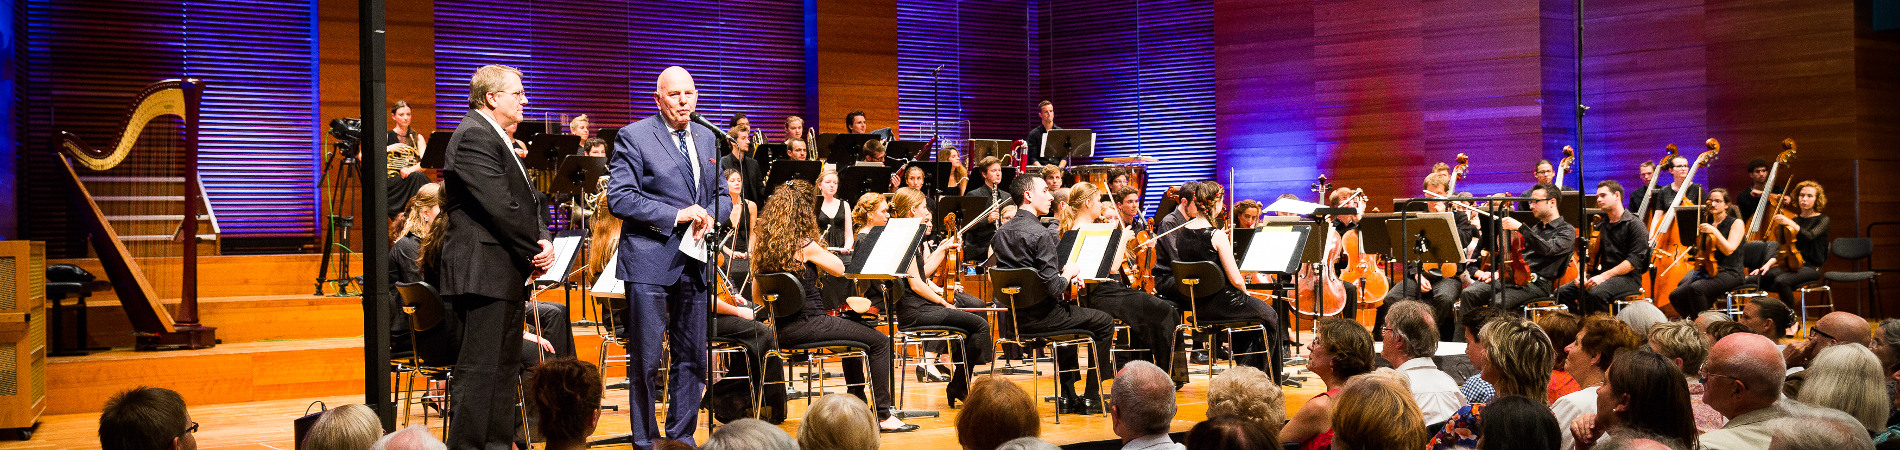 The Young Philharmonic Orchestra Jerusalem Weimar - Concert Tour in Israel